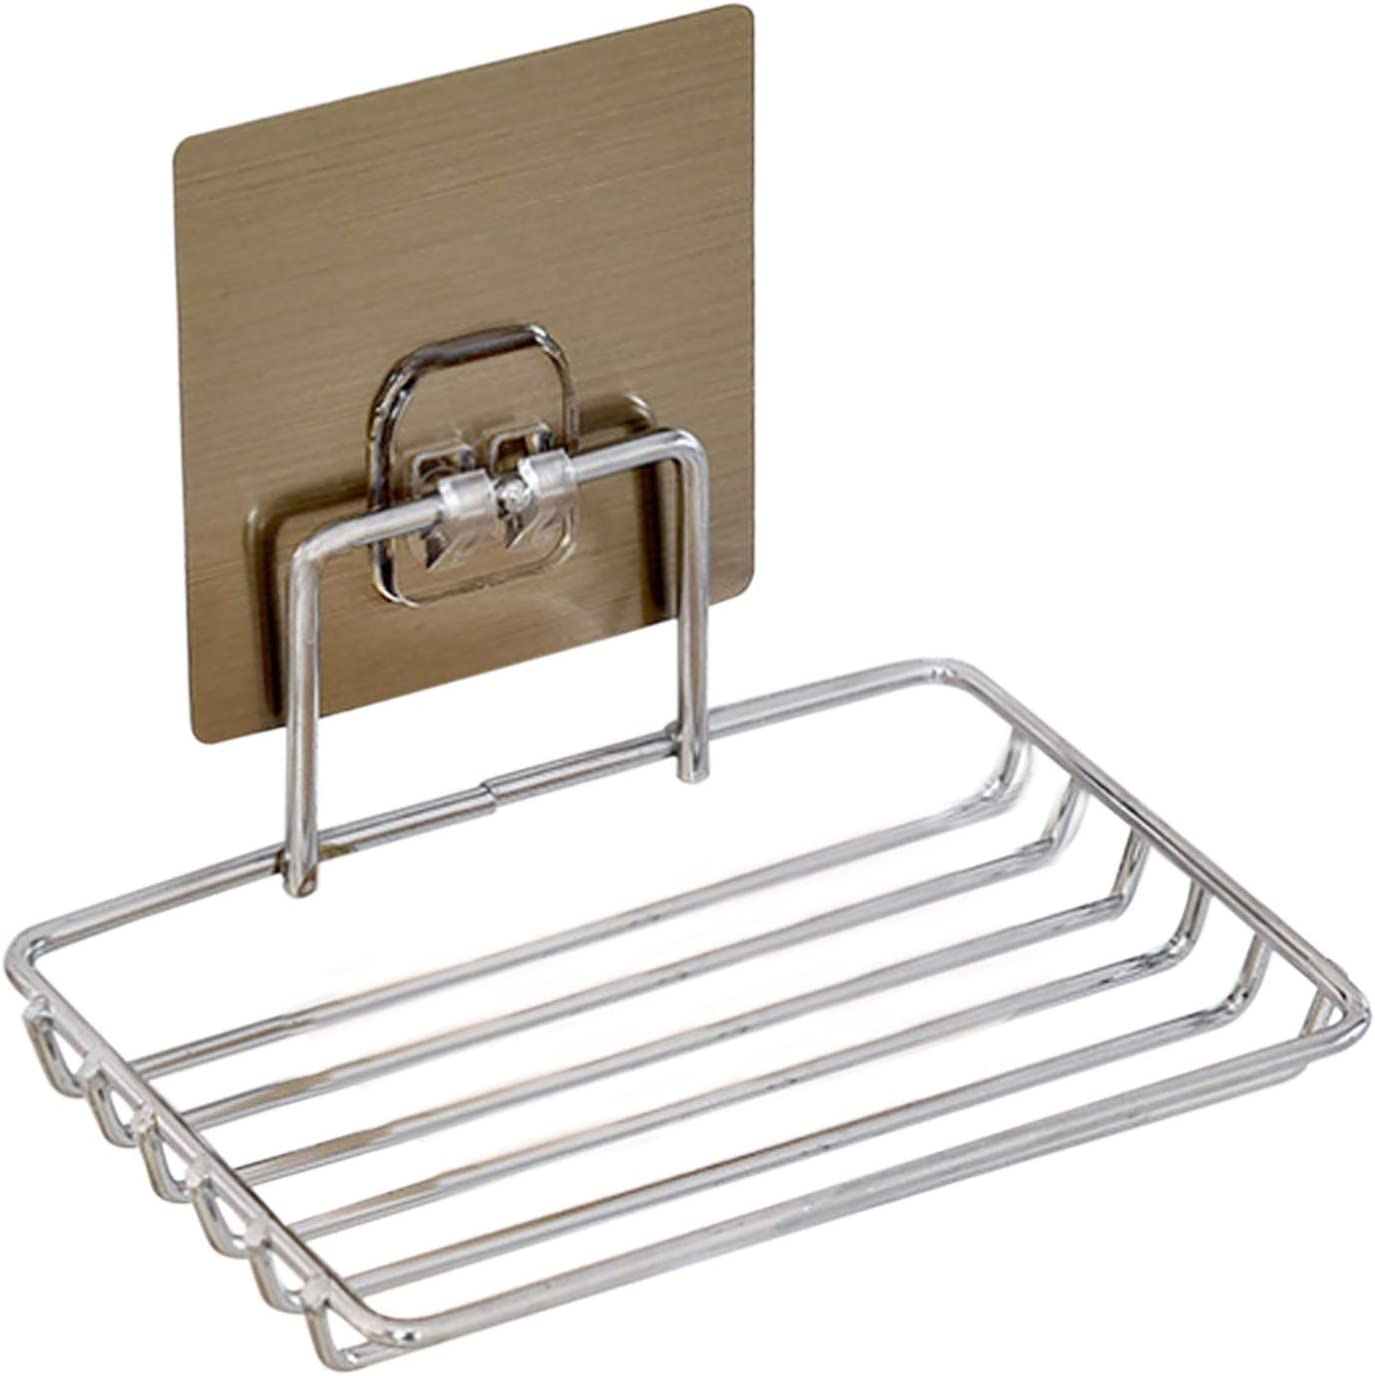 Yansanido Steel Soap Dish Holder Strong Powerful online shopping Super Adhesive At the price of surprise